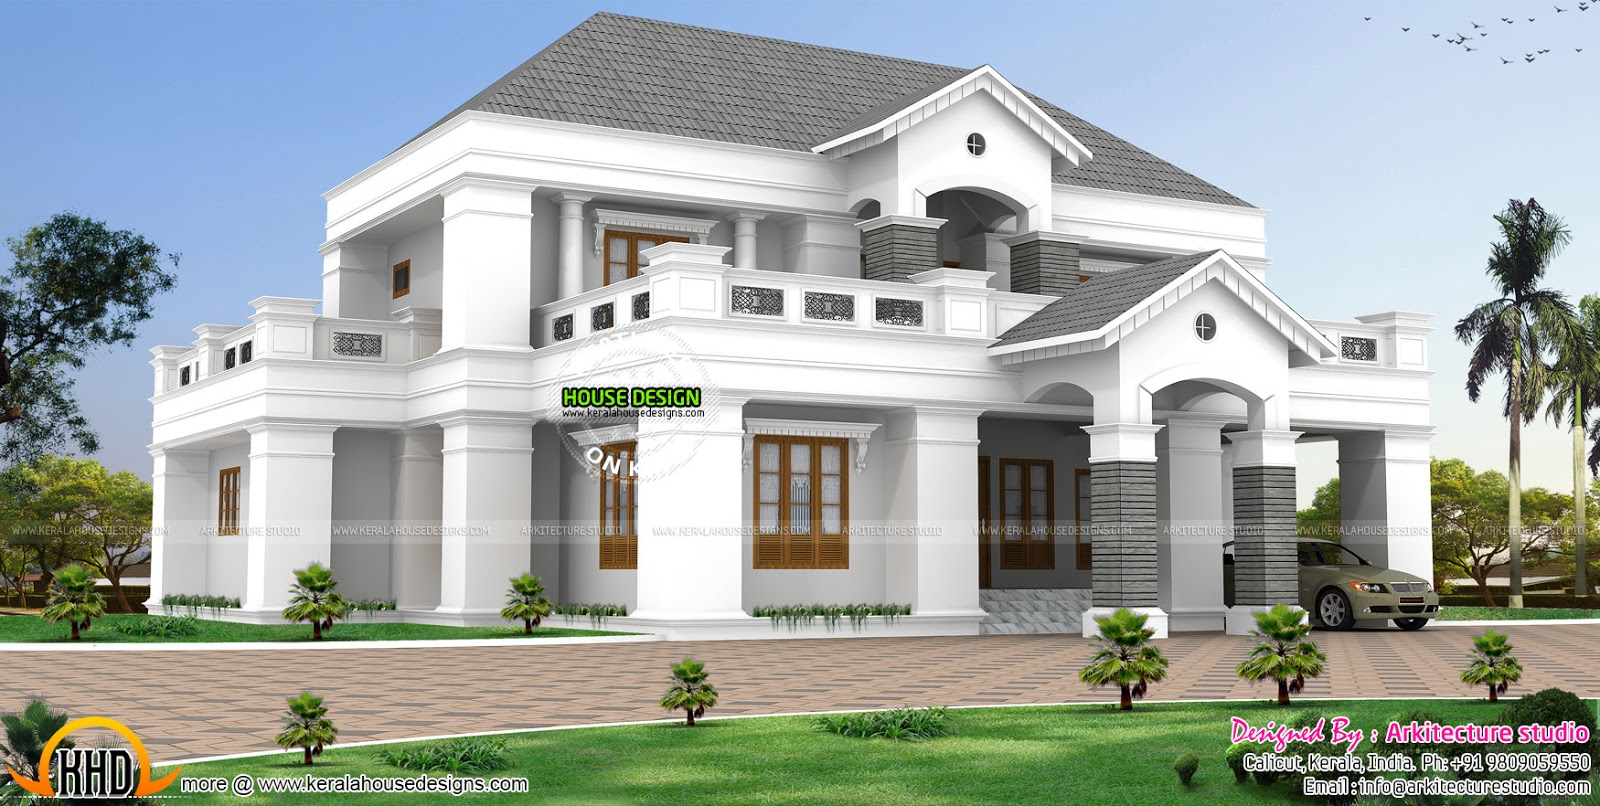 Luxurious pillar type home design kerala home design and for House and design